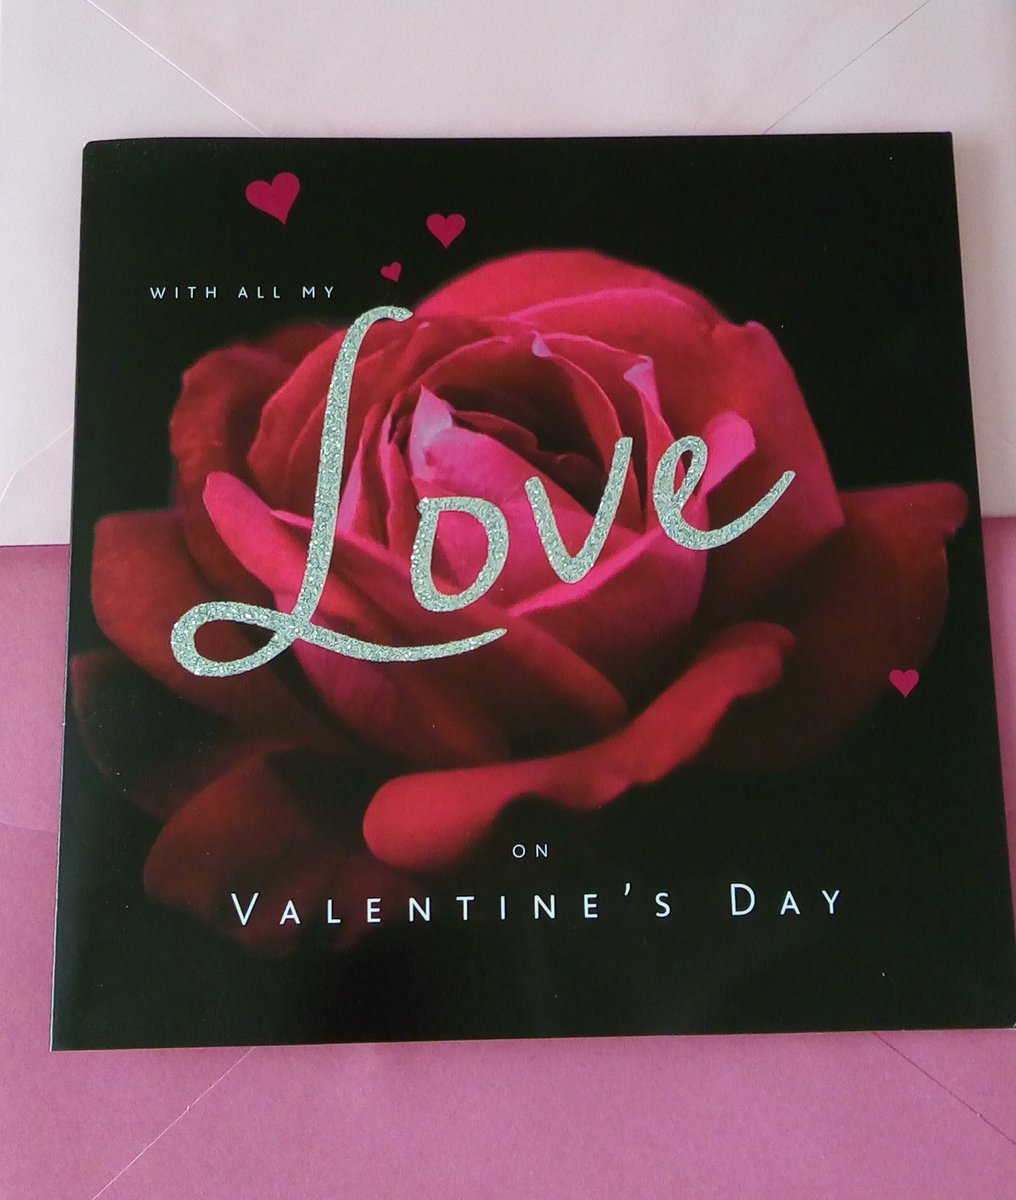 #thingstobethankfulfor This lovely #ValentinesDay2020 card from @CarsandGirlsMag I look at it when I get anxious about #coronaviruspic.twitter.com/3zBRmbfPPH